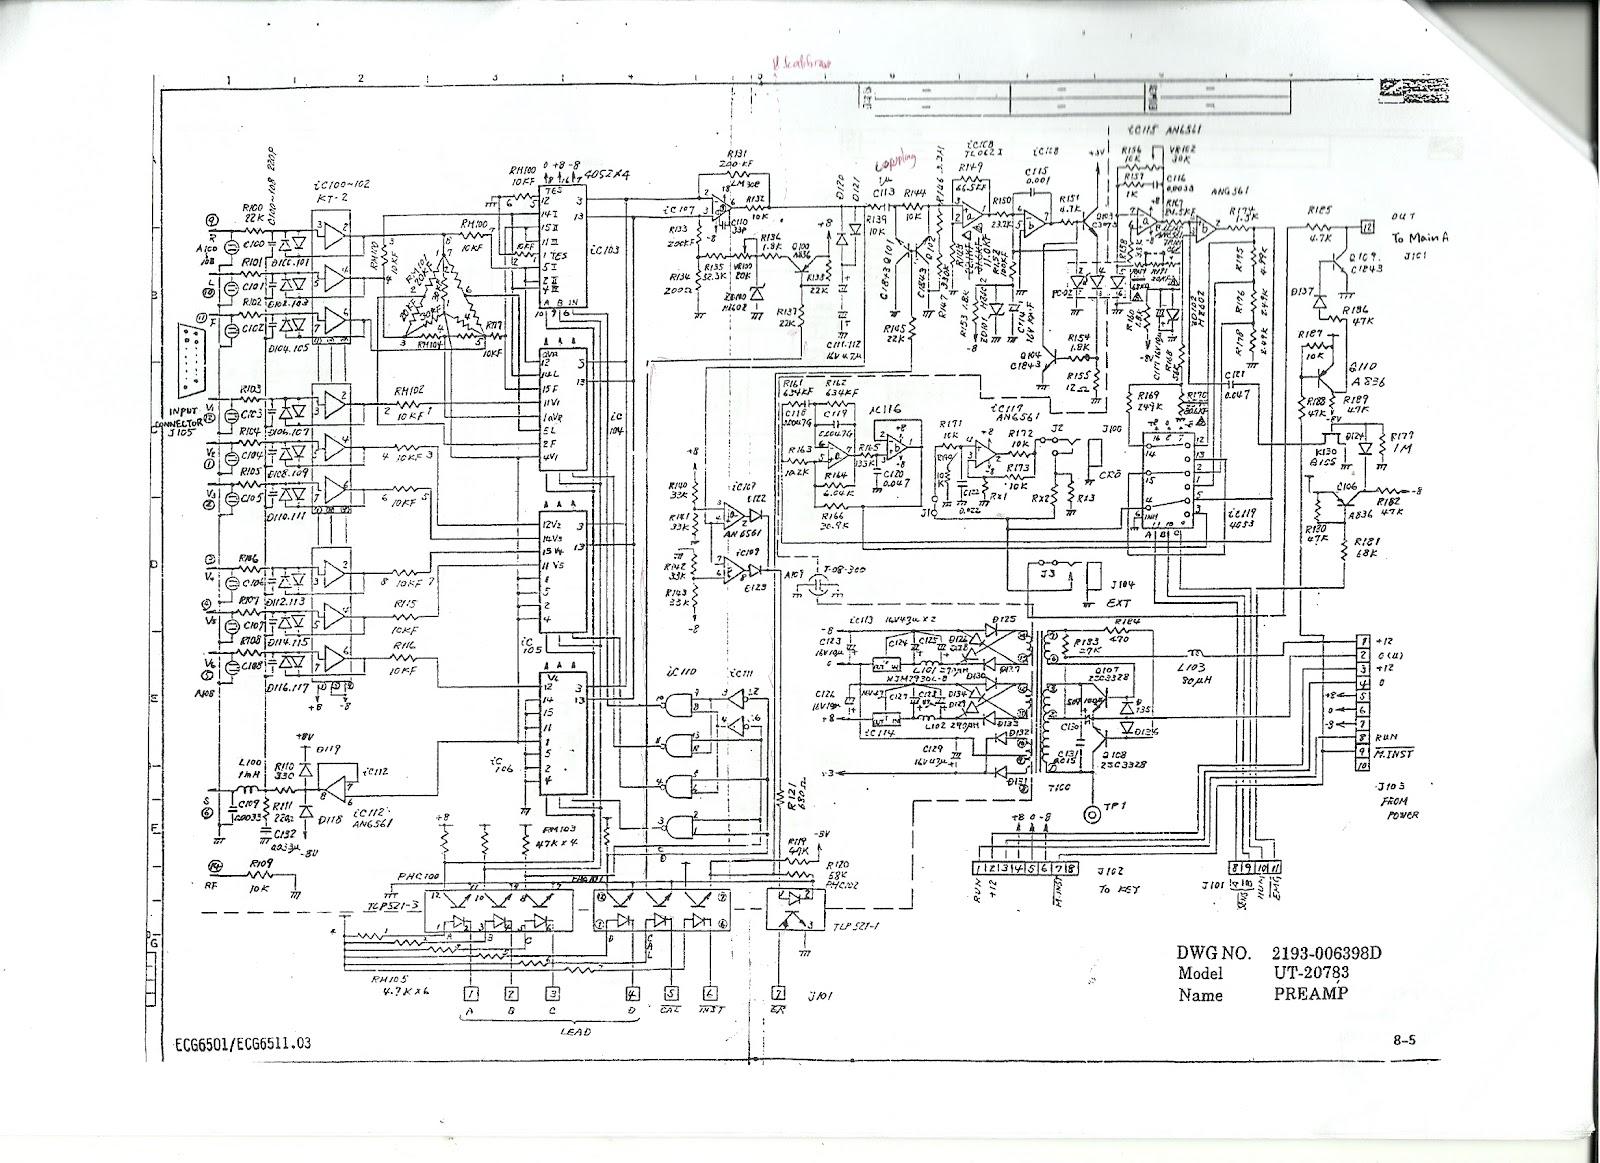 ekg wiring diagram wiring diagrams schematics rh samley co EKG Leads Diagram Labeled EKG Diagram